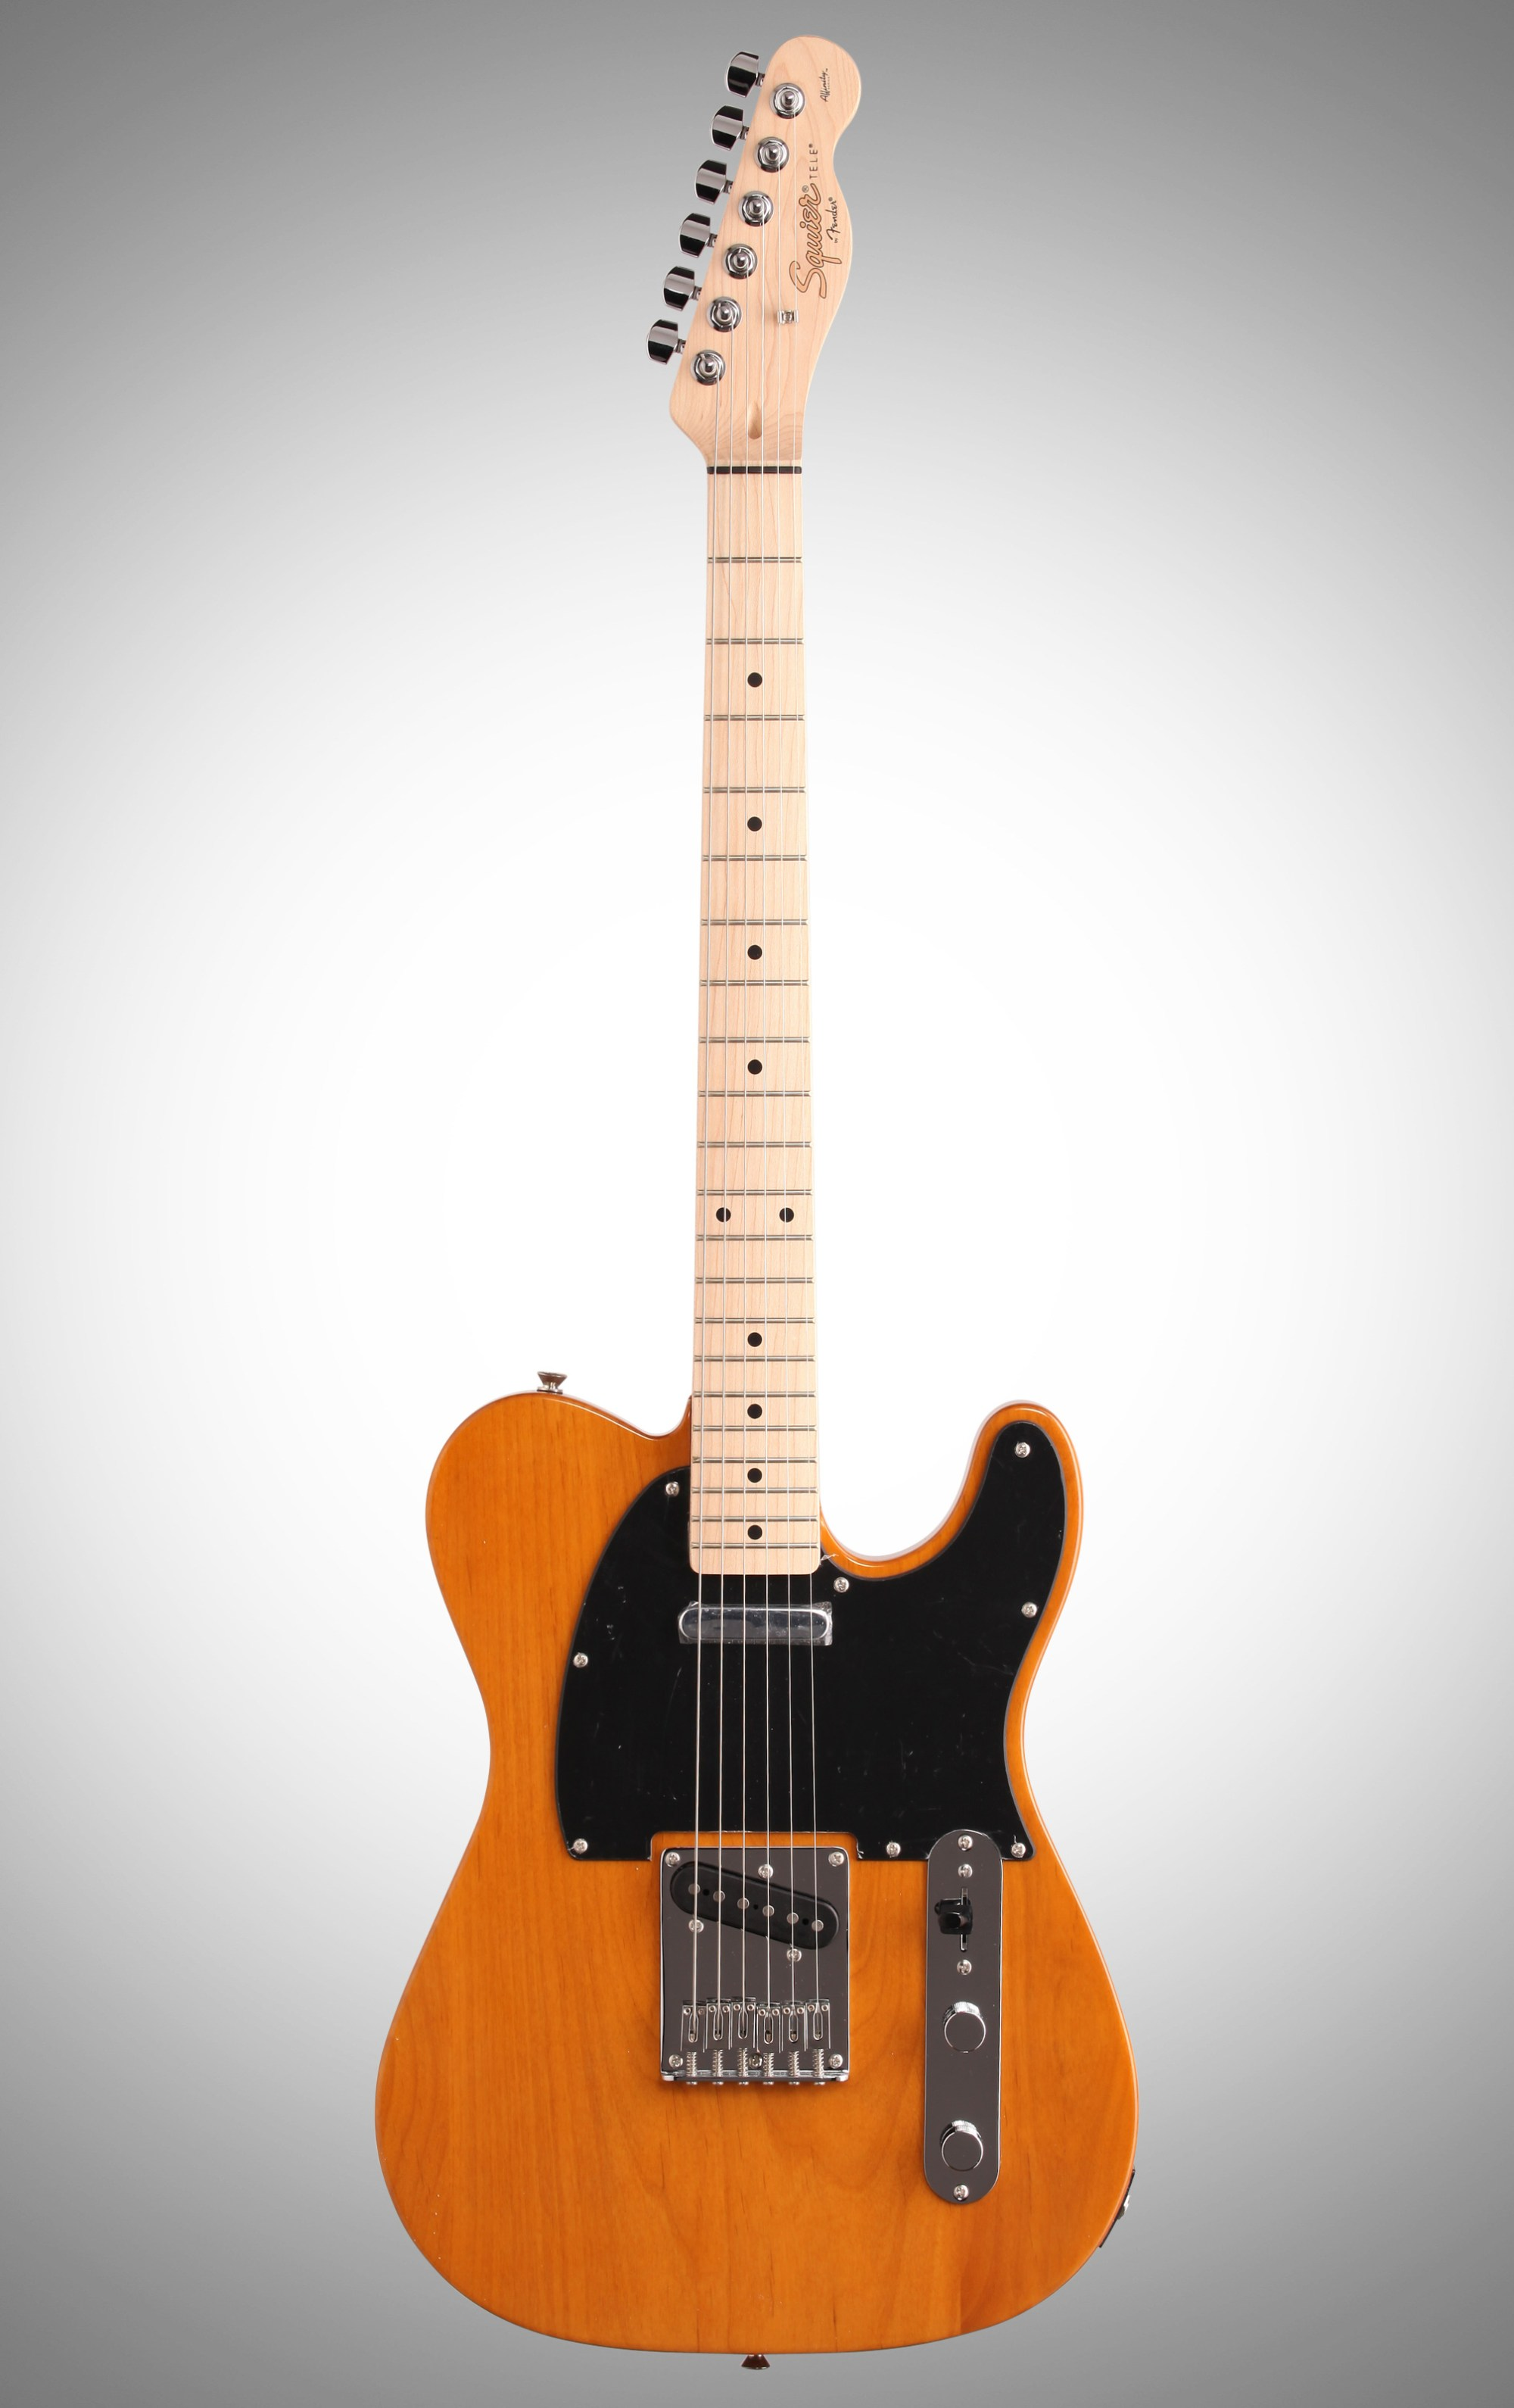 hight resolution of 1 full straight front na 21b1a190cb8c543028238beb3bfa55a3 squier affinity telecaster special maple butterscotch blonde telecaster 3 way